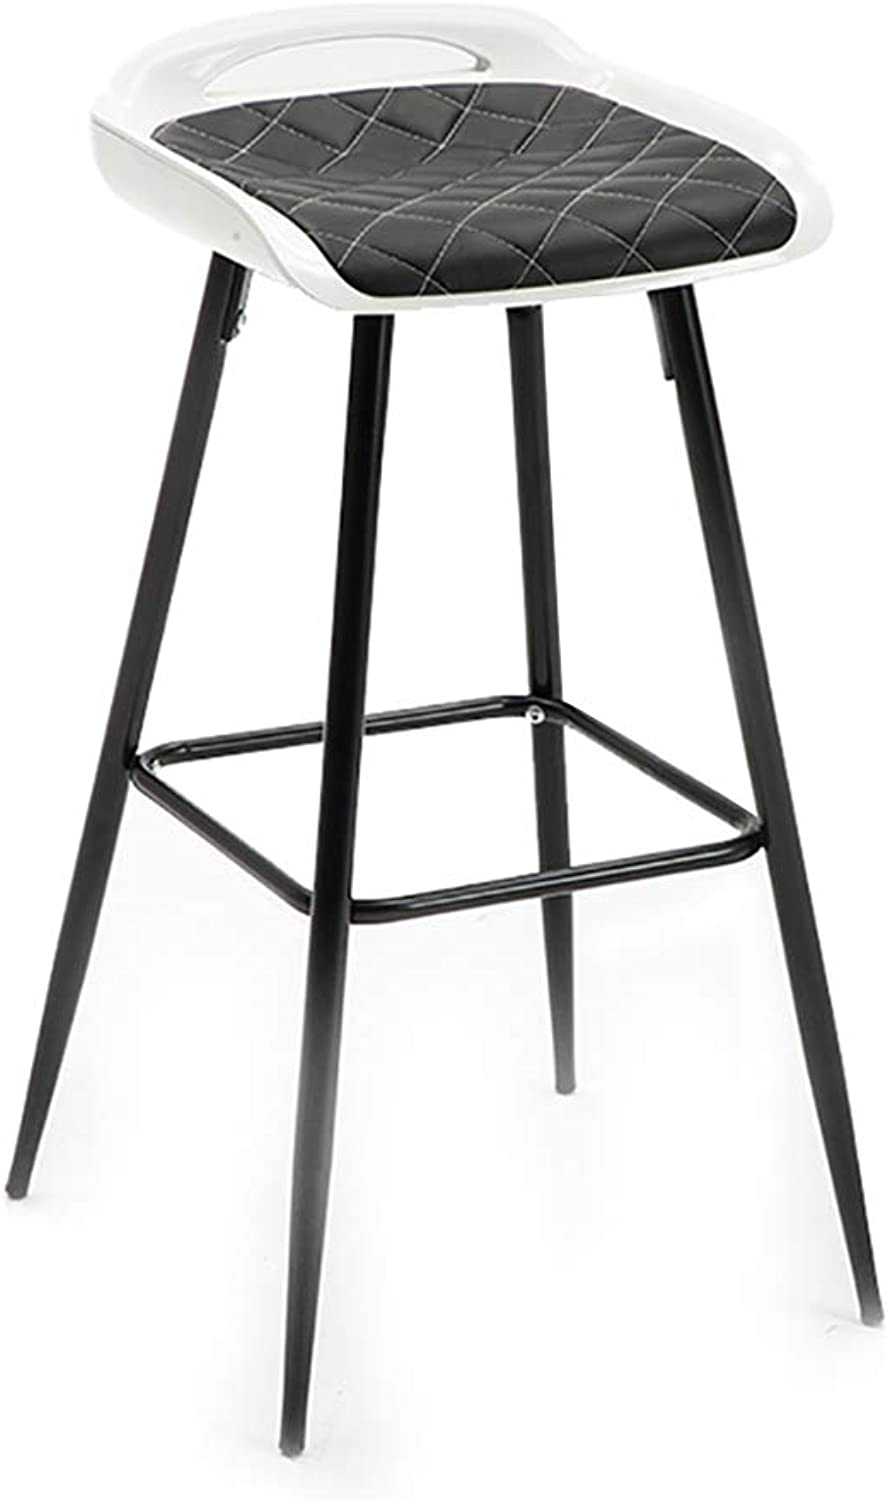 YUBIN Bar Stool, Square Seat, PU Leather Seat, Breakfast Stool and Bar Stool for Kitchen (color   Black Black feet)